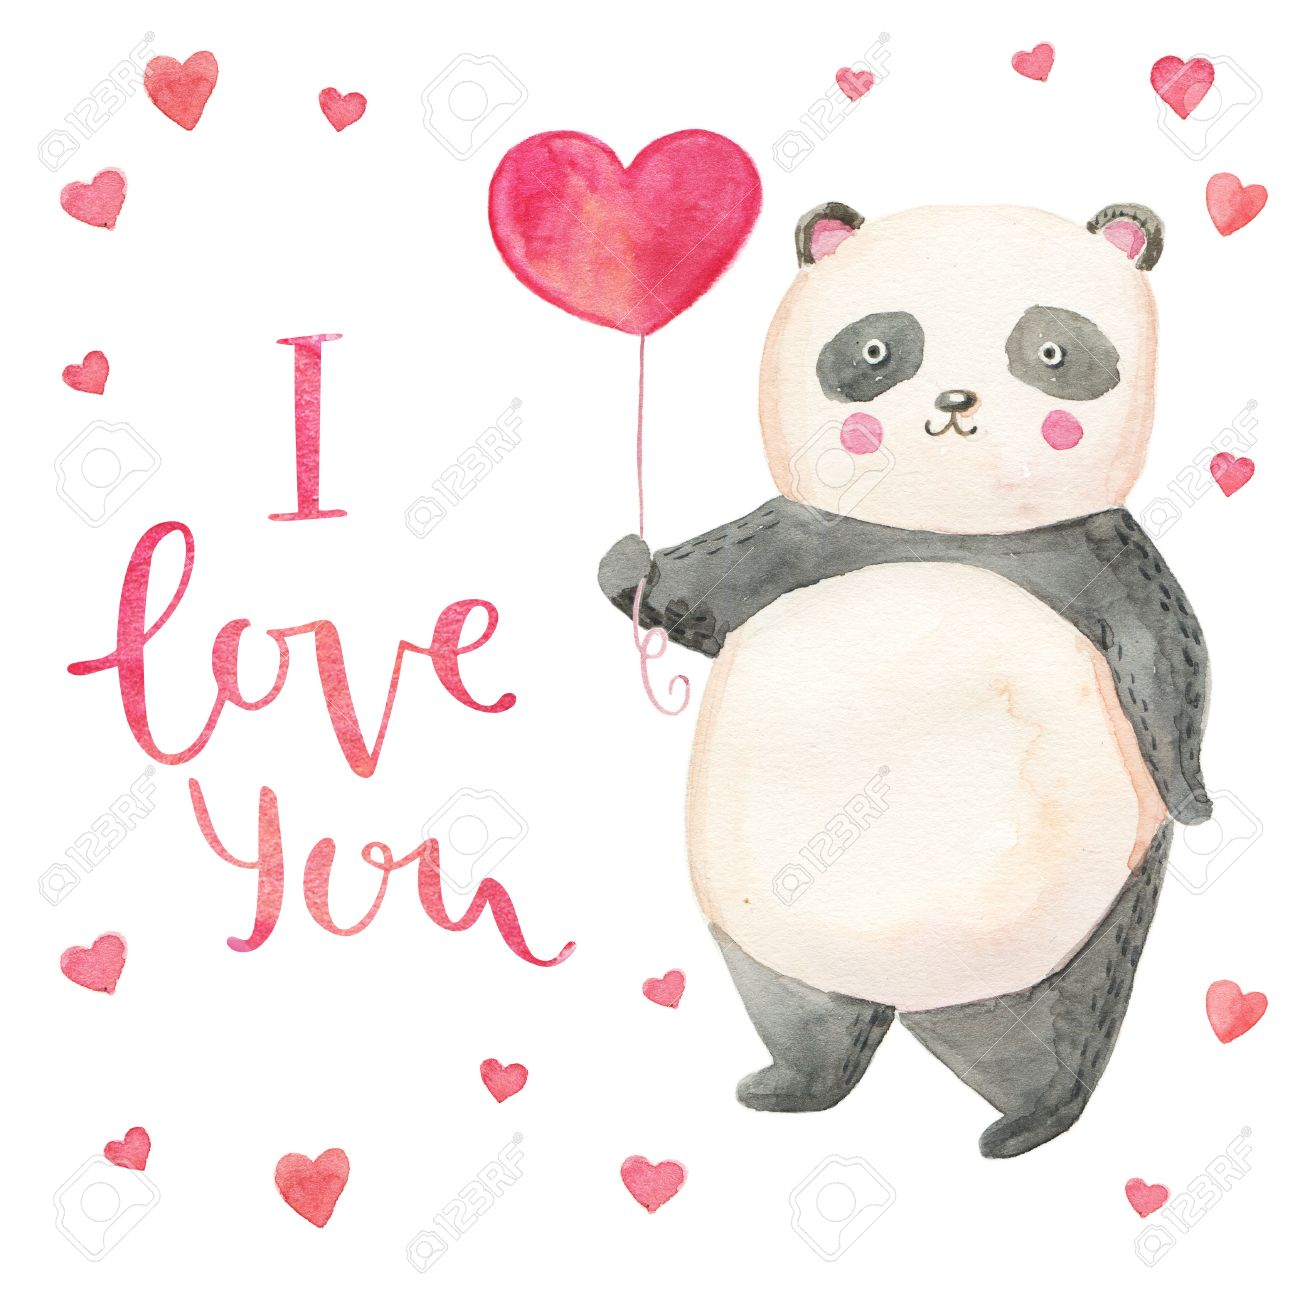 Cute Illustration Panda With Hearts Card For Valentines Day